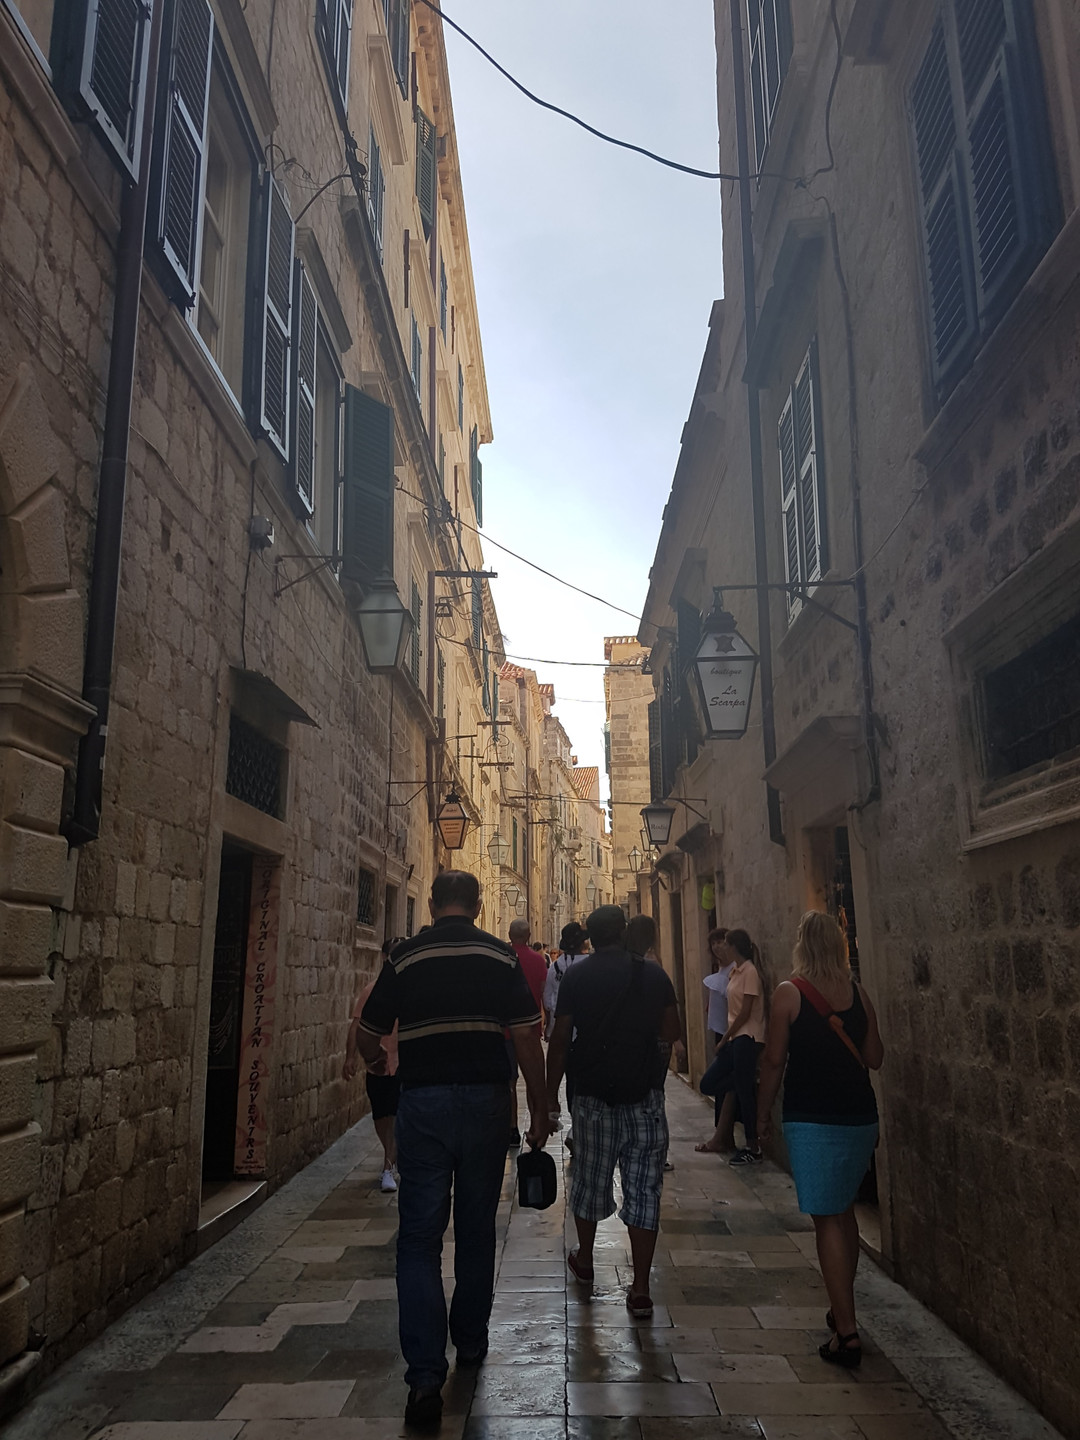 Small Streets of Old Town